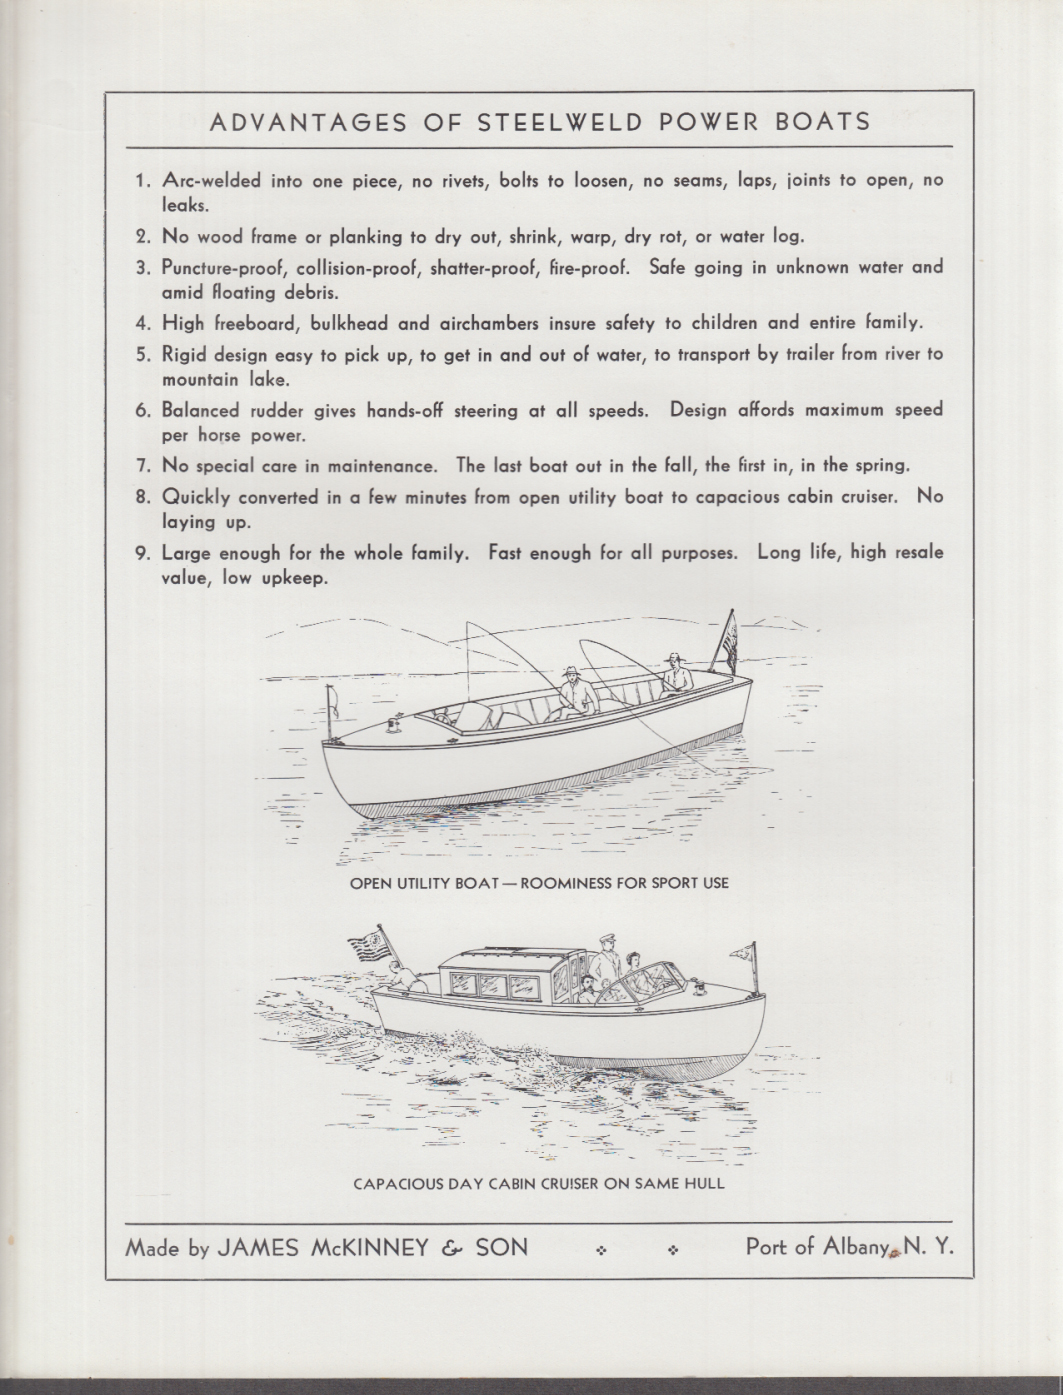 1933 Launches The Steelweld Power Boat sales folder James McKinney & Son